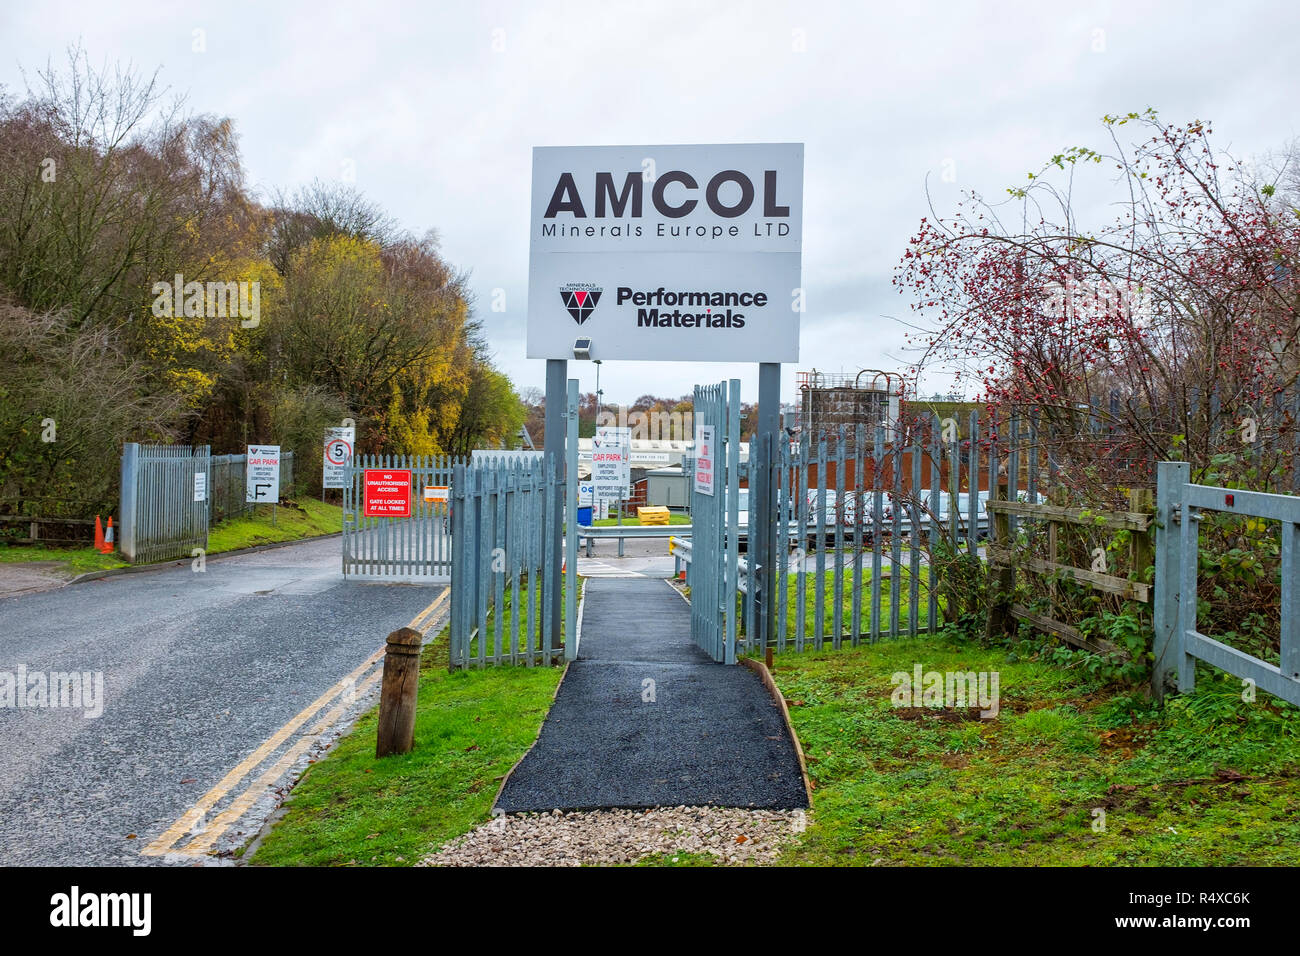 Amcol Minerals Europe Ltd in Winsford Cheshire UK - Stock Image